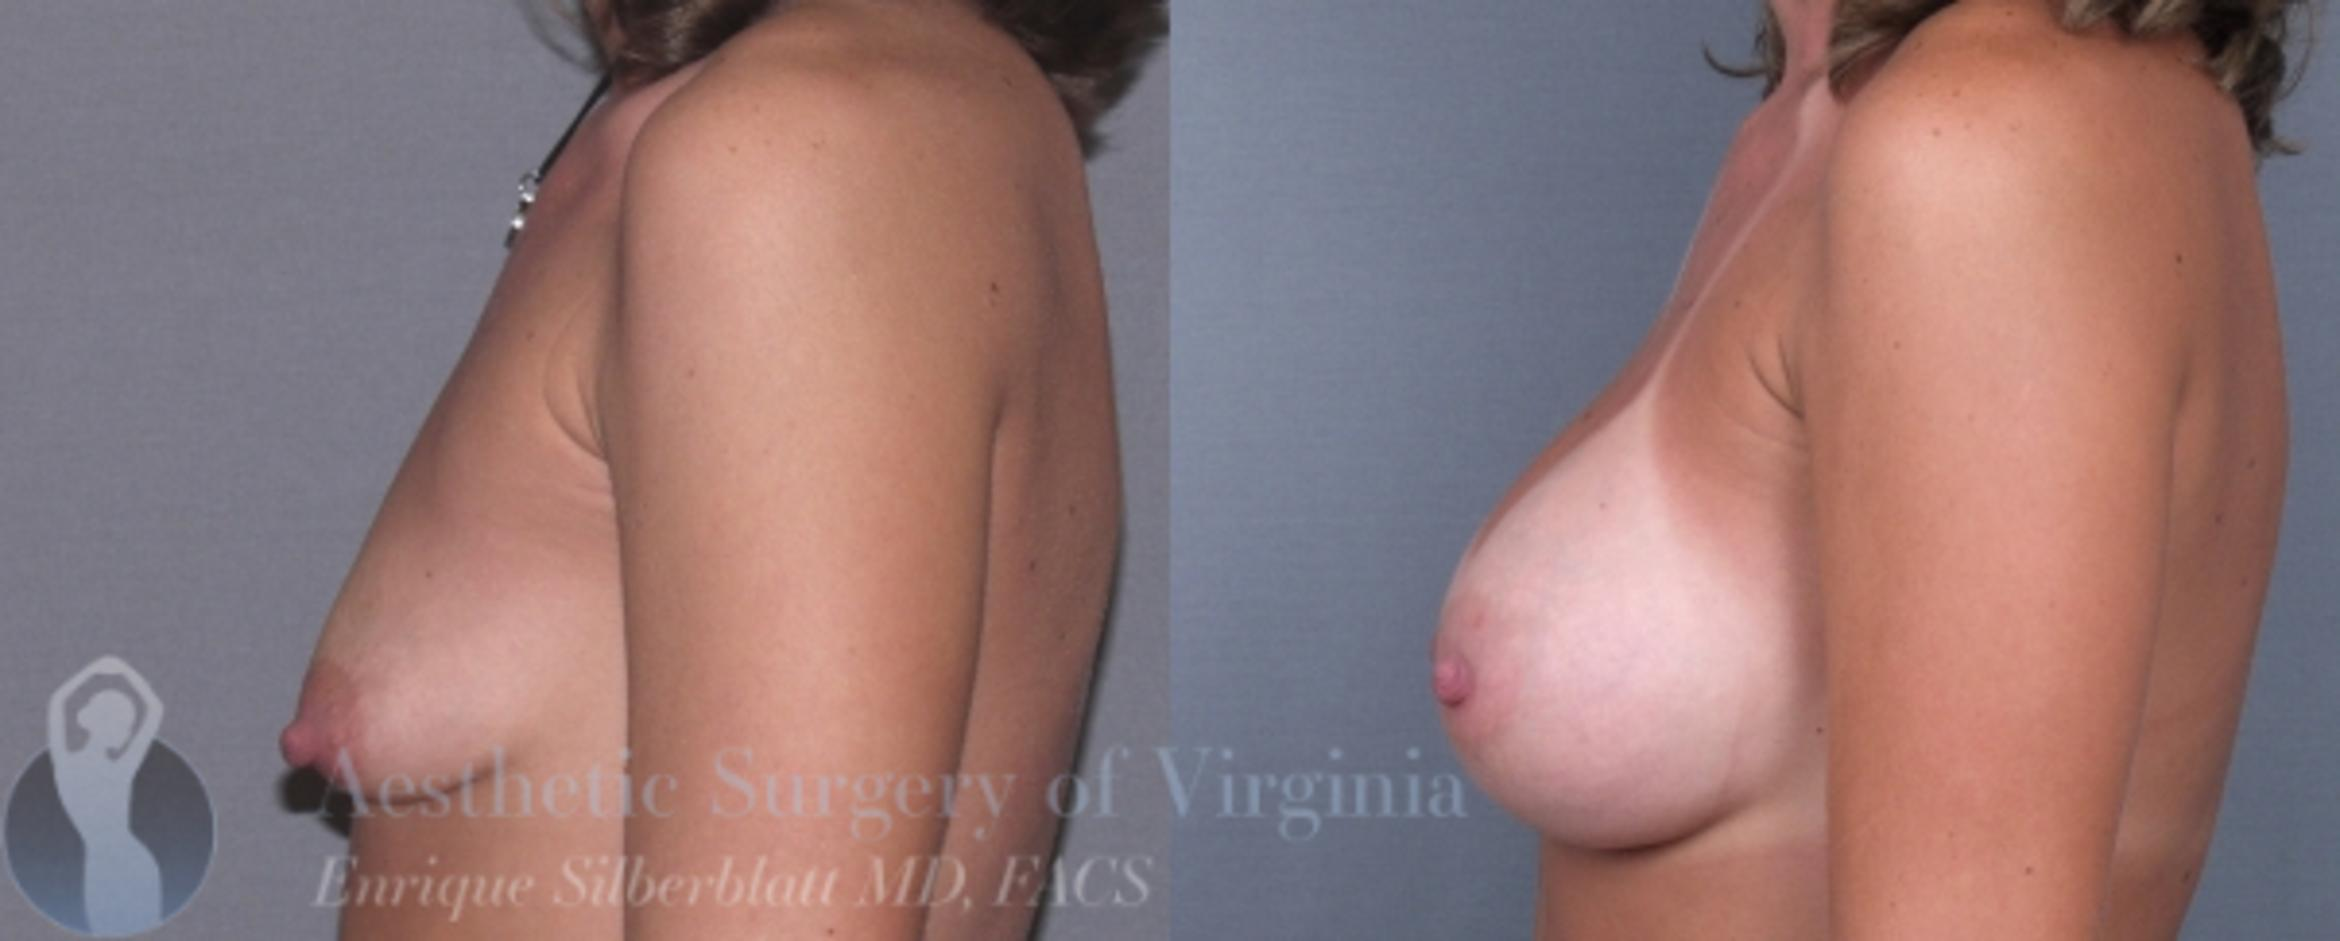 Breast Augmentation Case 4 Before & After View #4 | Roanoke, VA | Aesthetic Surgery of Virginia: Enrique Silberblatt, MD